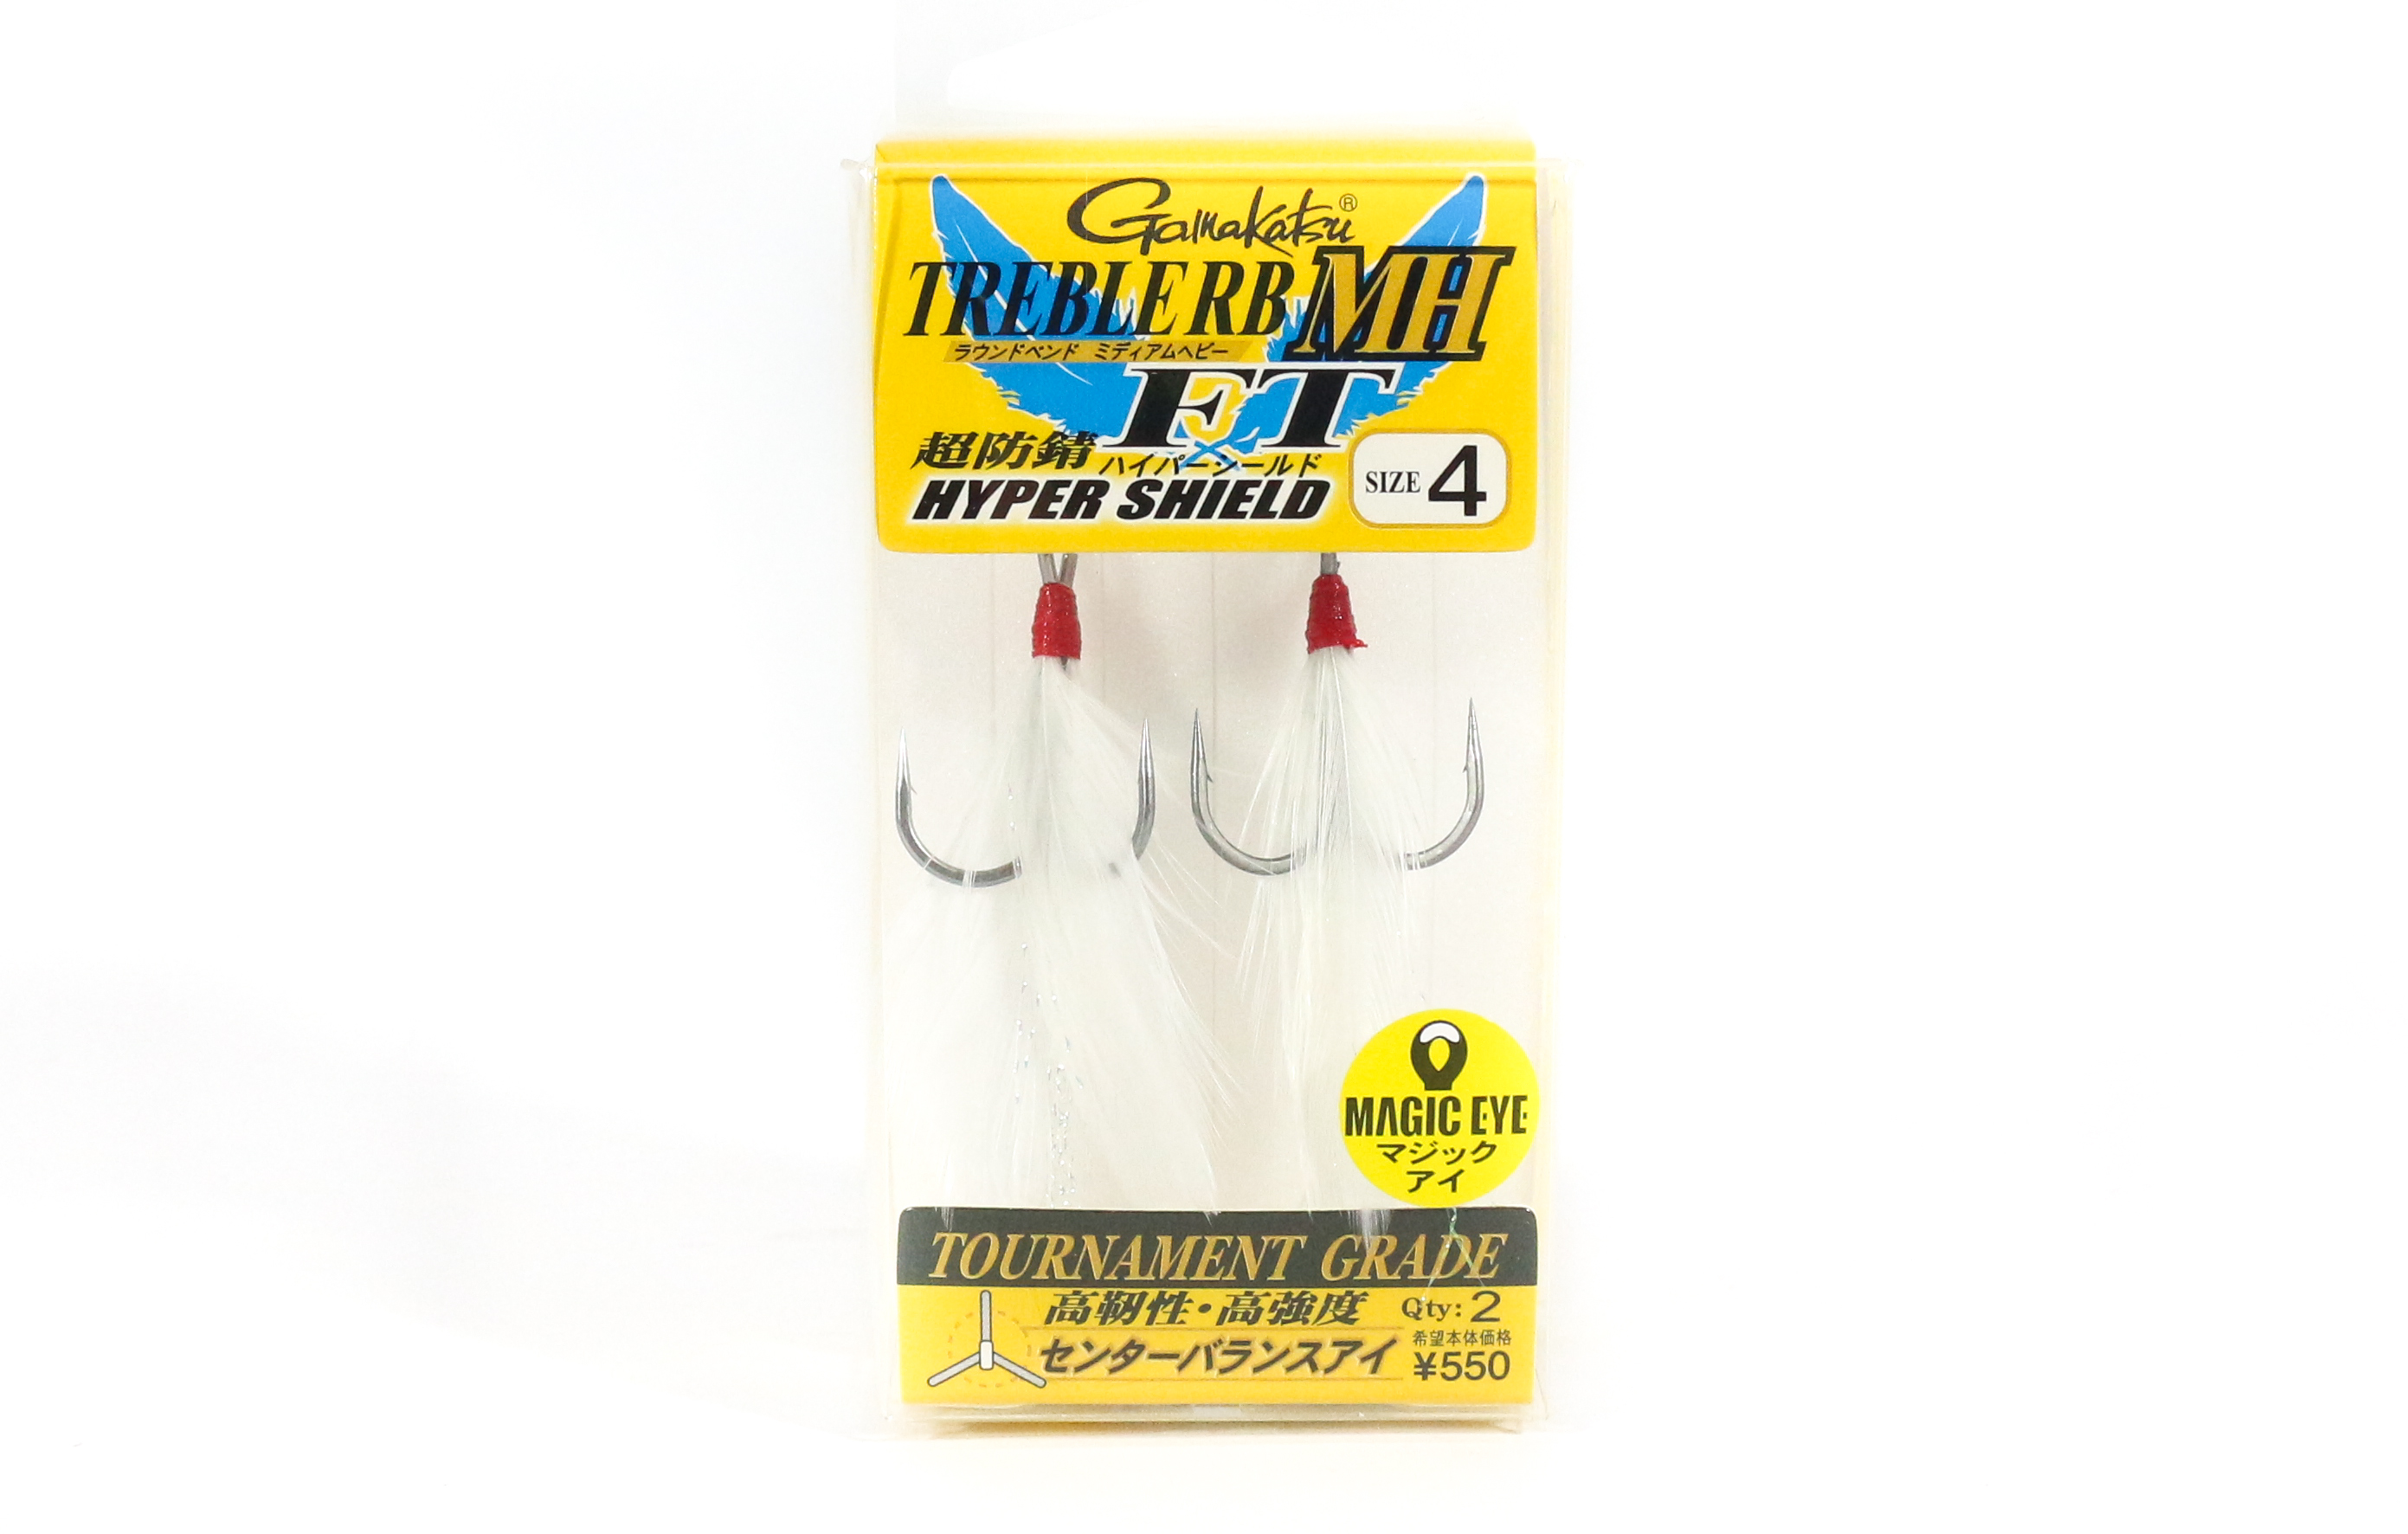 Gamakatsu Treble Hook RB MH FT Feather Hyper Shield Size 4 (3790)